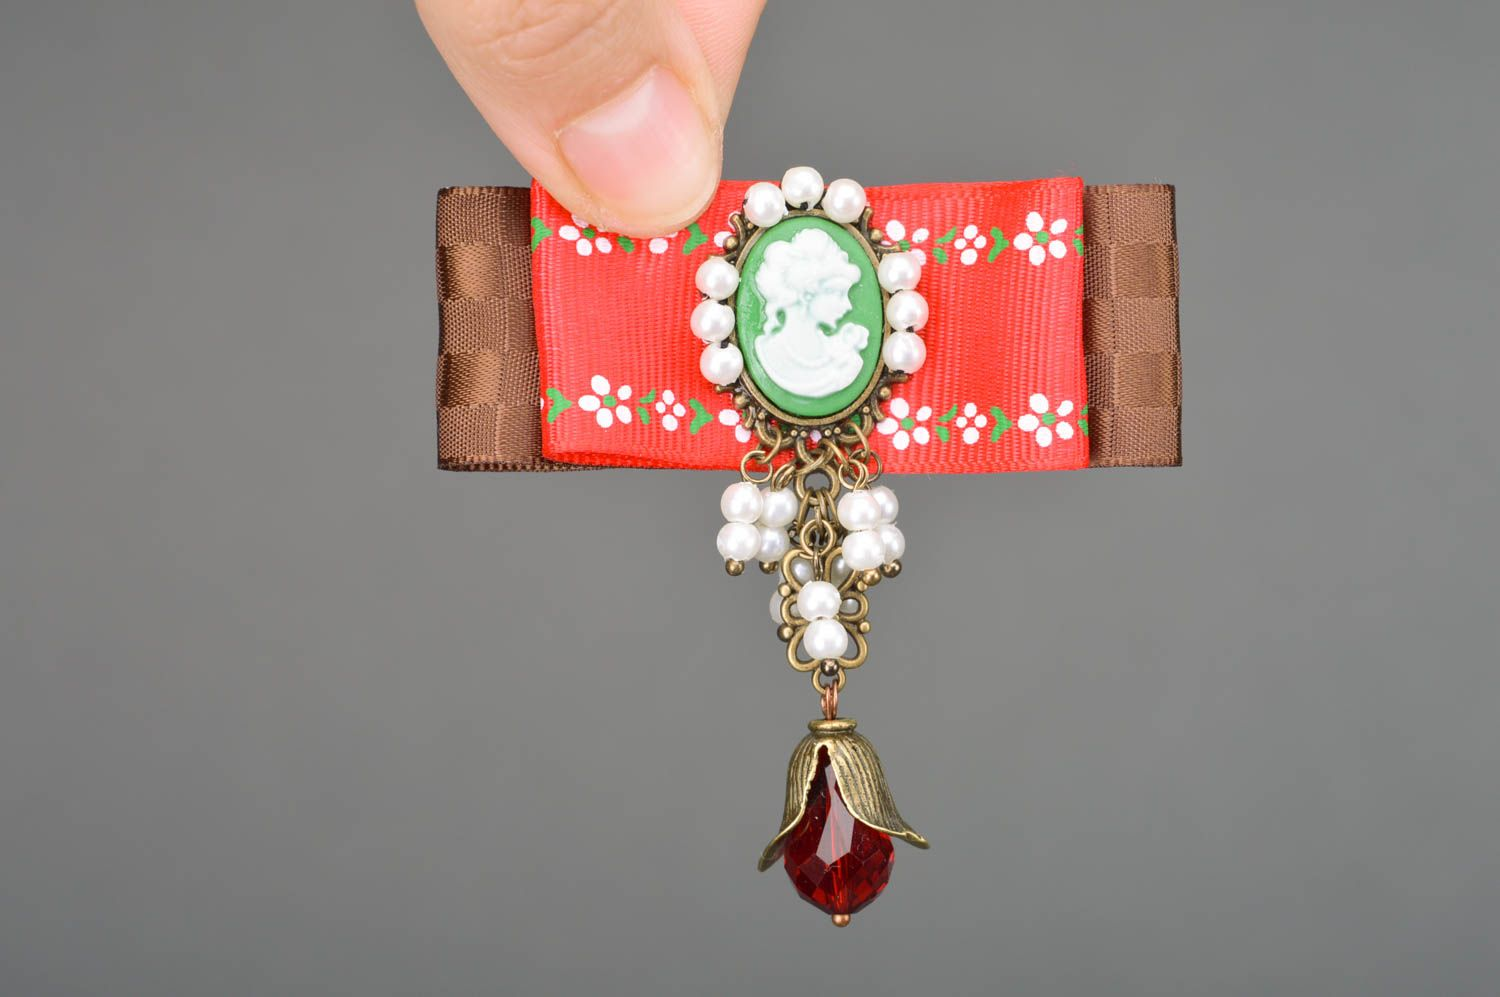 cameo brooches Handmade vintage rep ribbon brooch with cameo and beads in red and brown colors - MADEheart.com